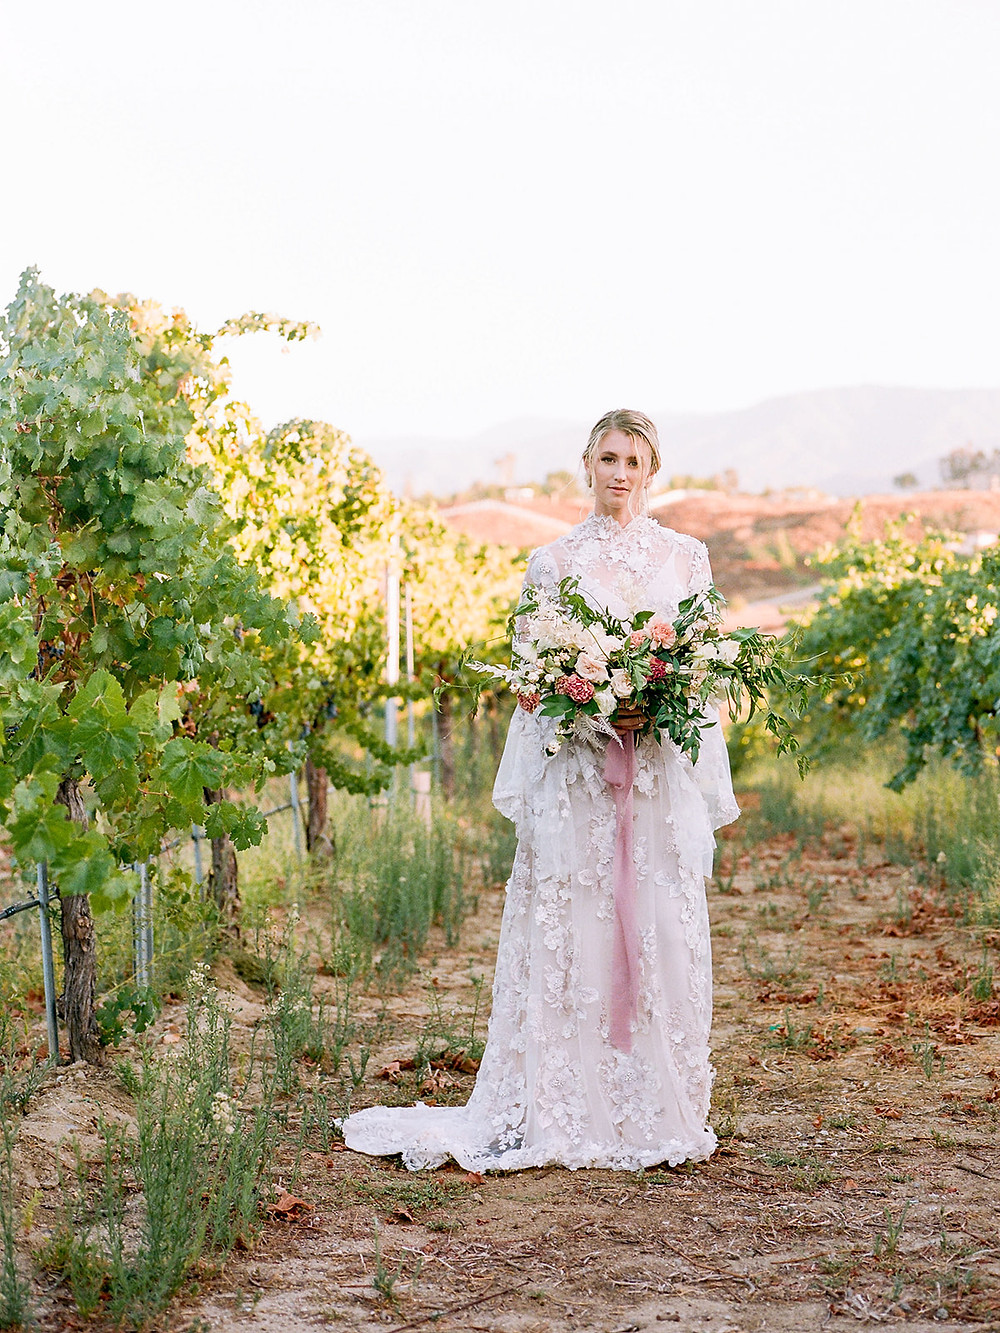 Romantic Avensole Winery Wedding in Temecula, CA